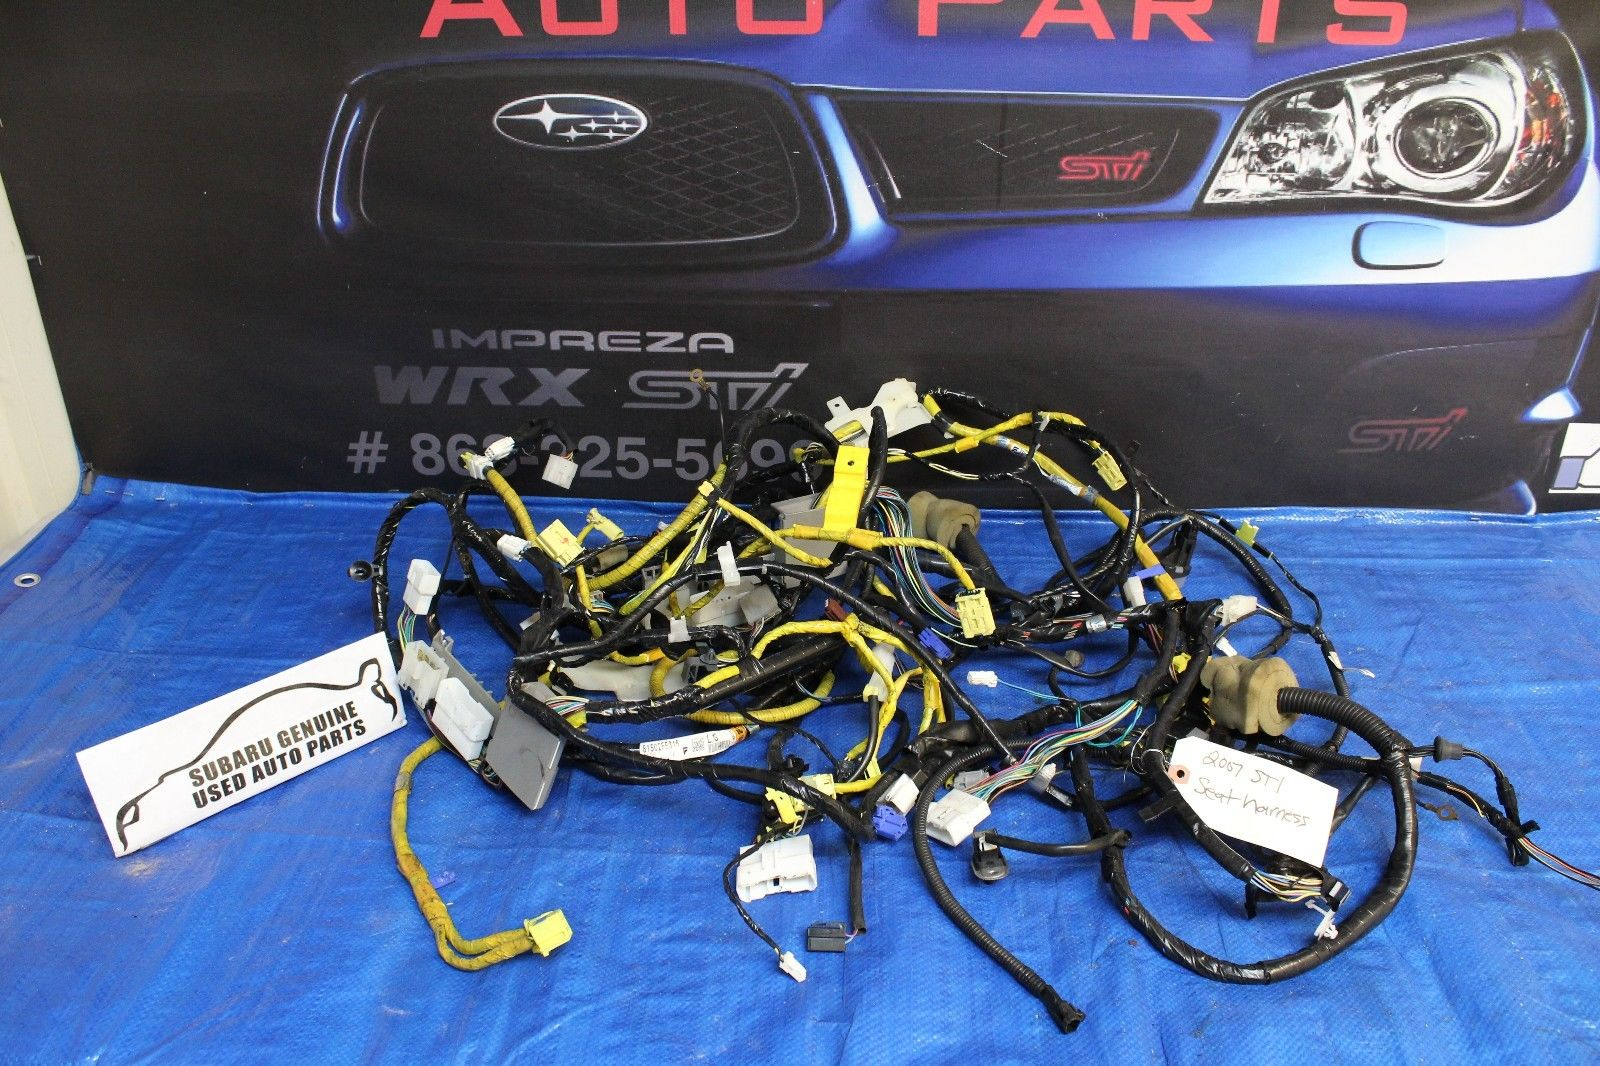 2004 Subaru Wiring Harness Diagrams Clarion Diagram Impreza Wrx Installation Parts Wires Stereo Interface